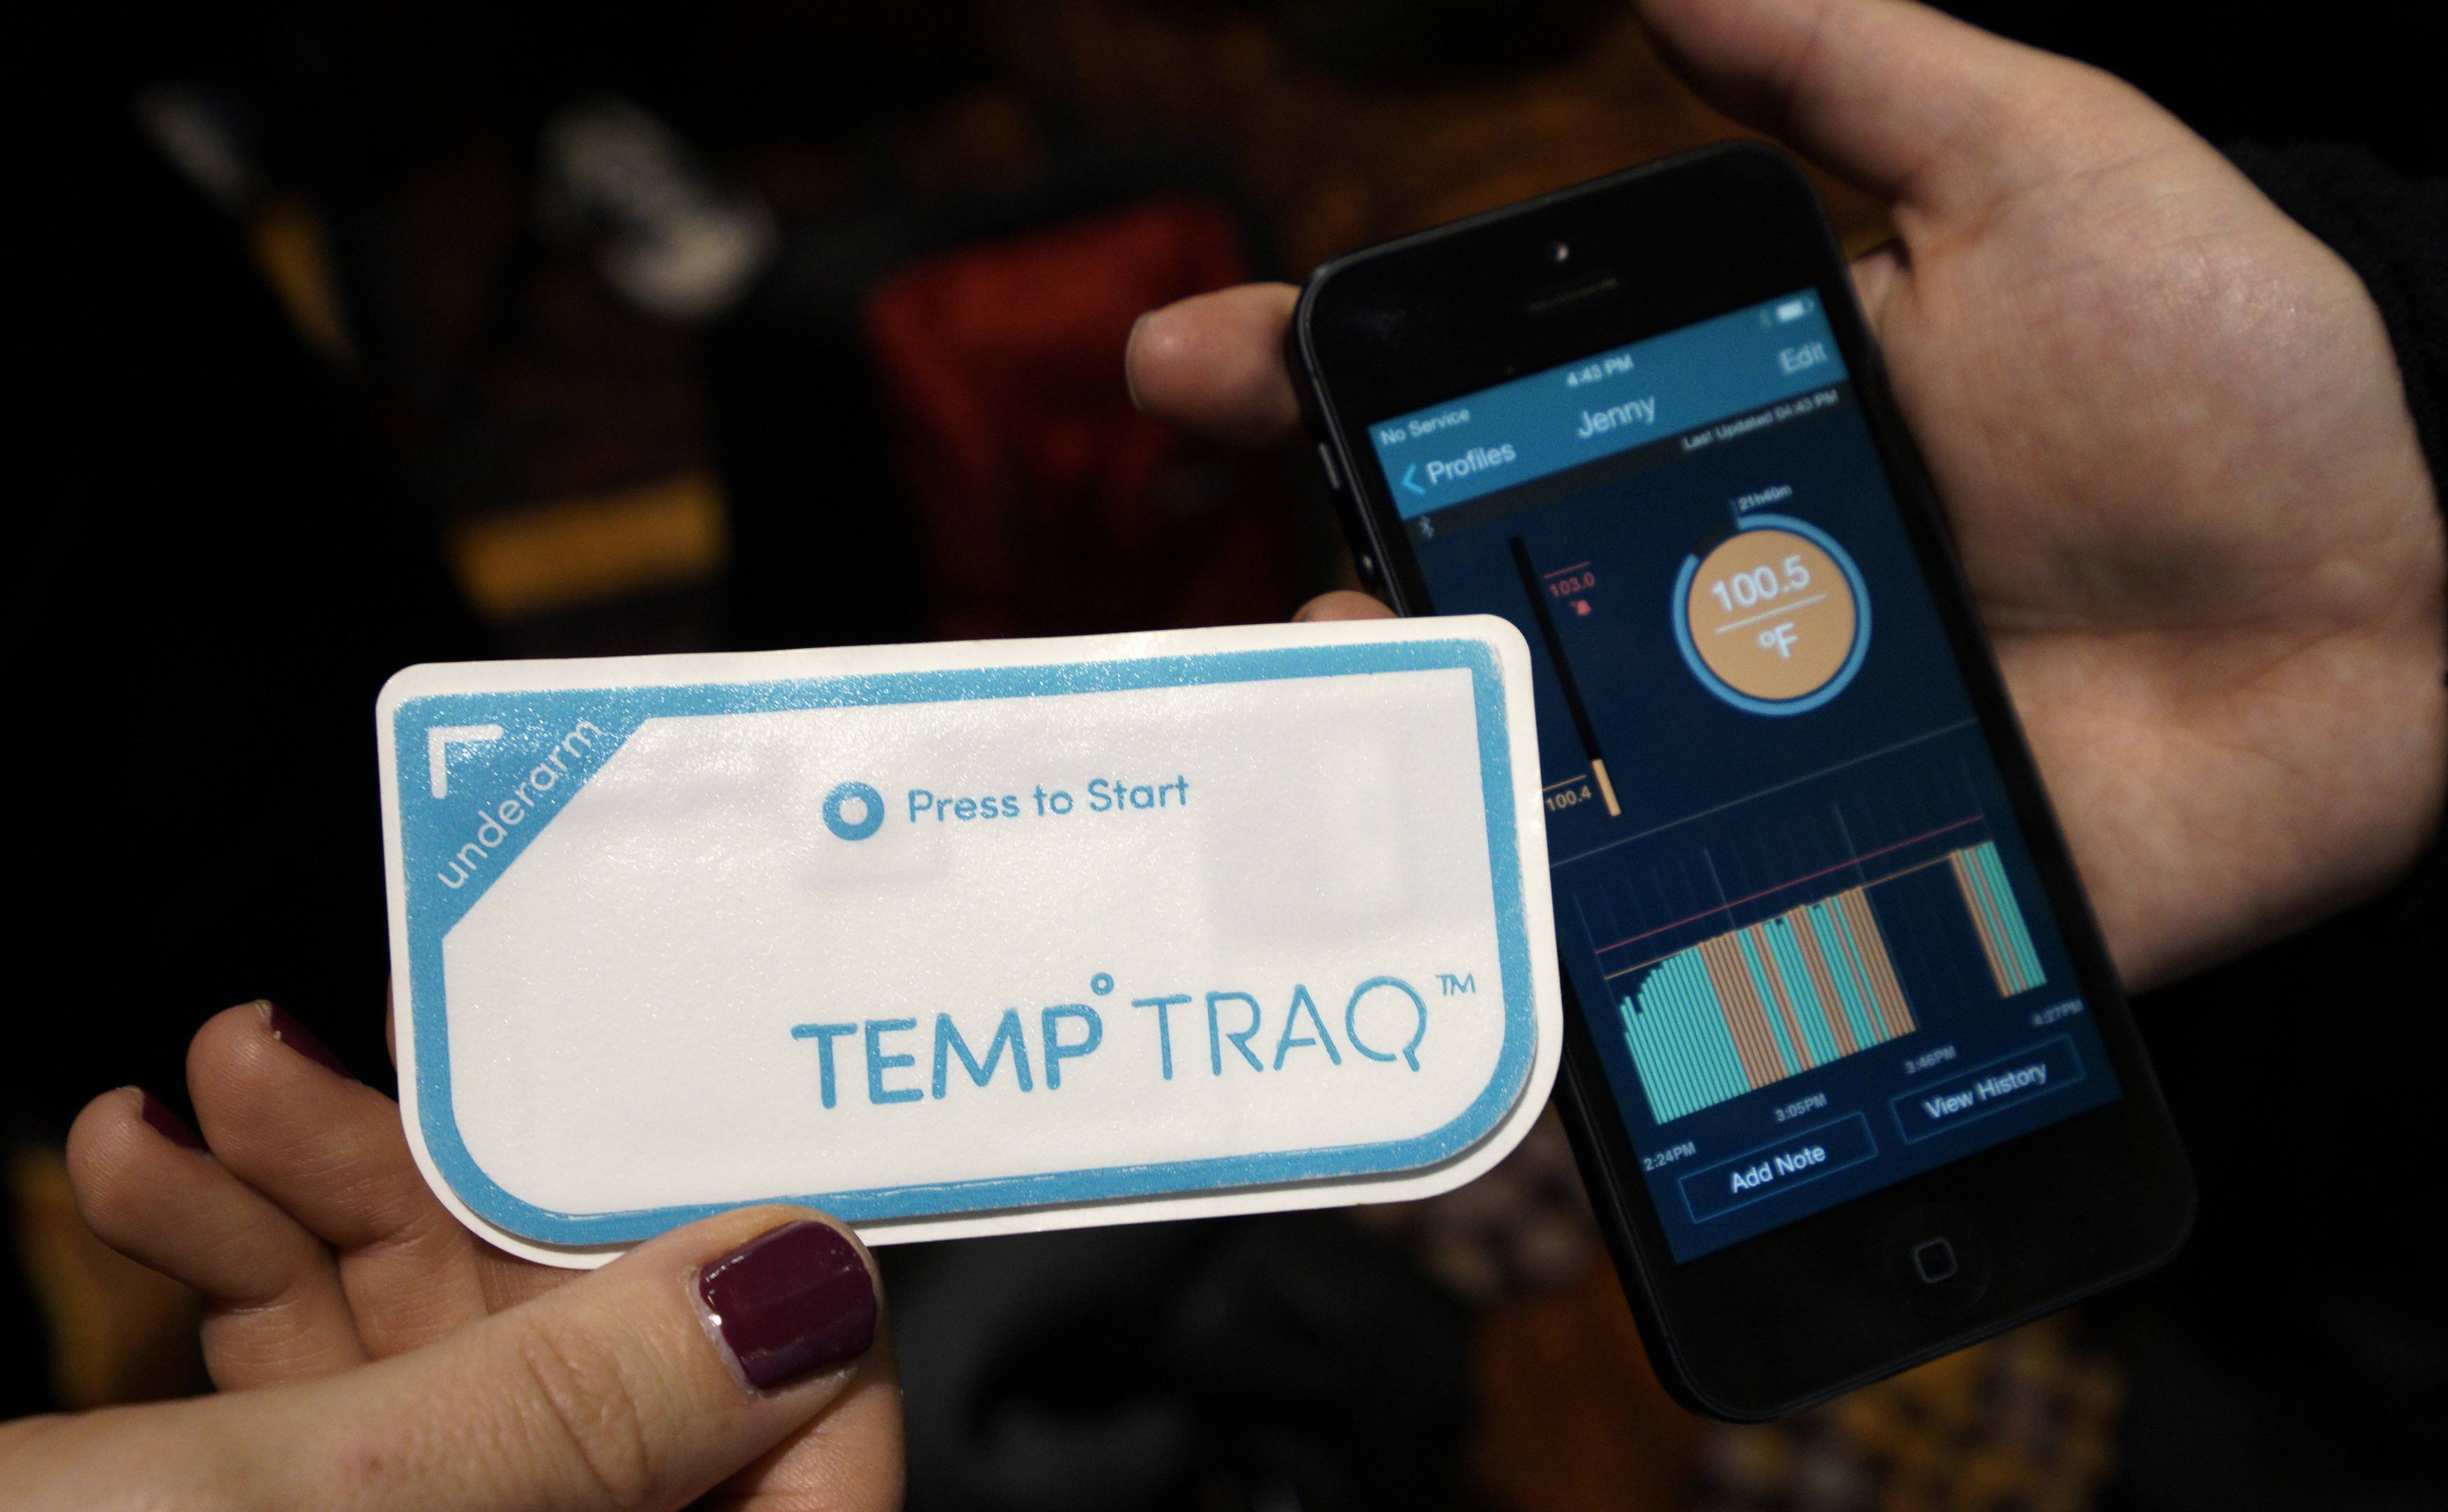 TempTraq body temperature wearable bluetooth thermometer and its accompanying app are displayed at the International Consumer Electronics show in Las Vegas